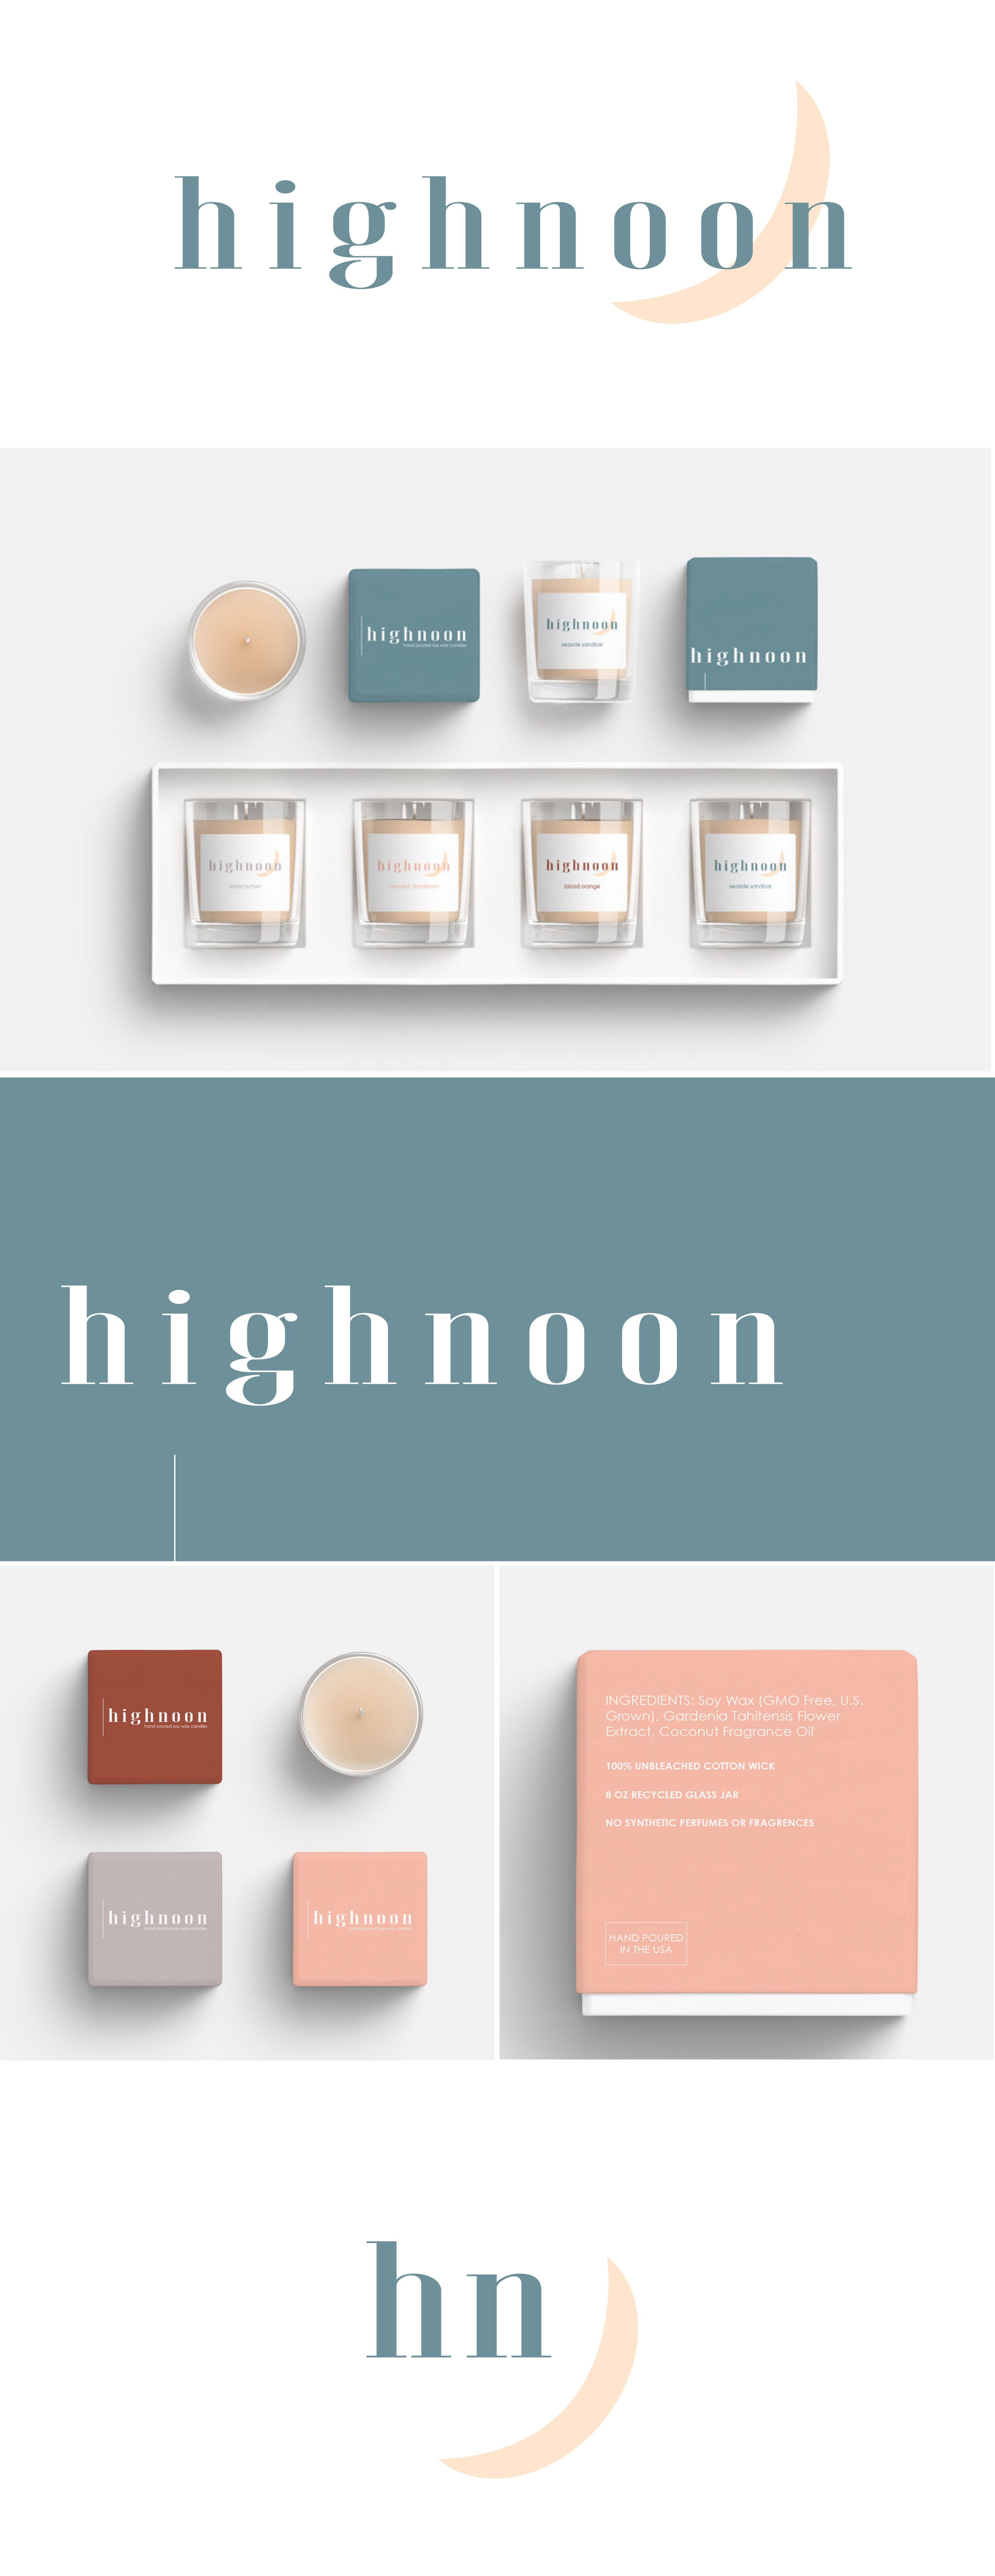 Highnoon Brand Designed By Here Now Creative Co The Design Is